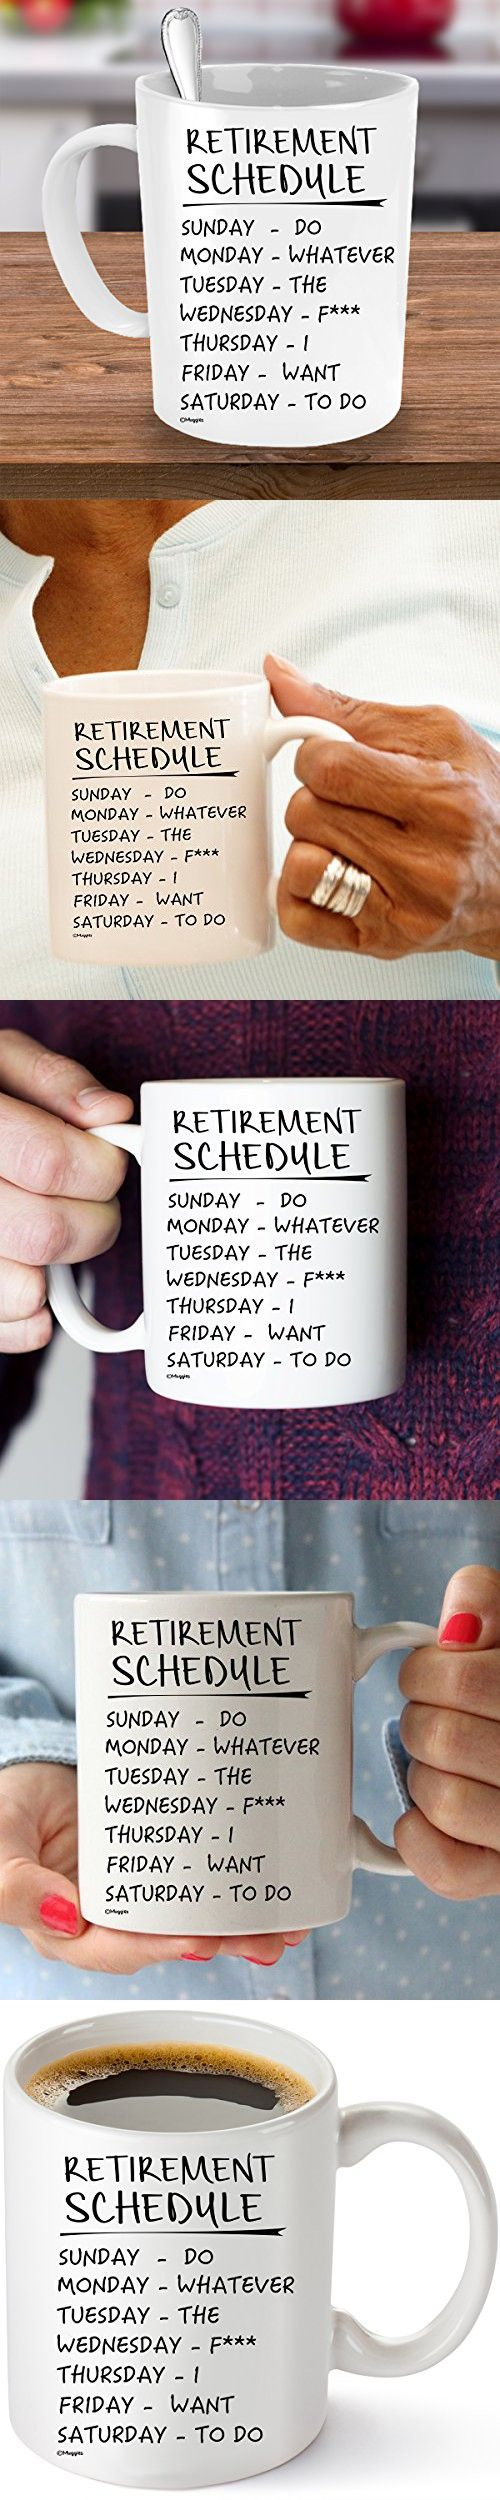 Muggies Retirement Schedule Funny Coffee Tea 11oz. Mug. Unique Cup For Birthday, Mother's & Father's Day, Pension, Christmas Gifts For Mom, Dad, Nana, Papa